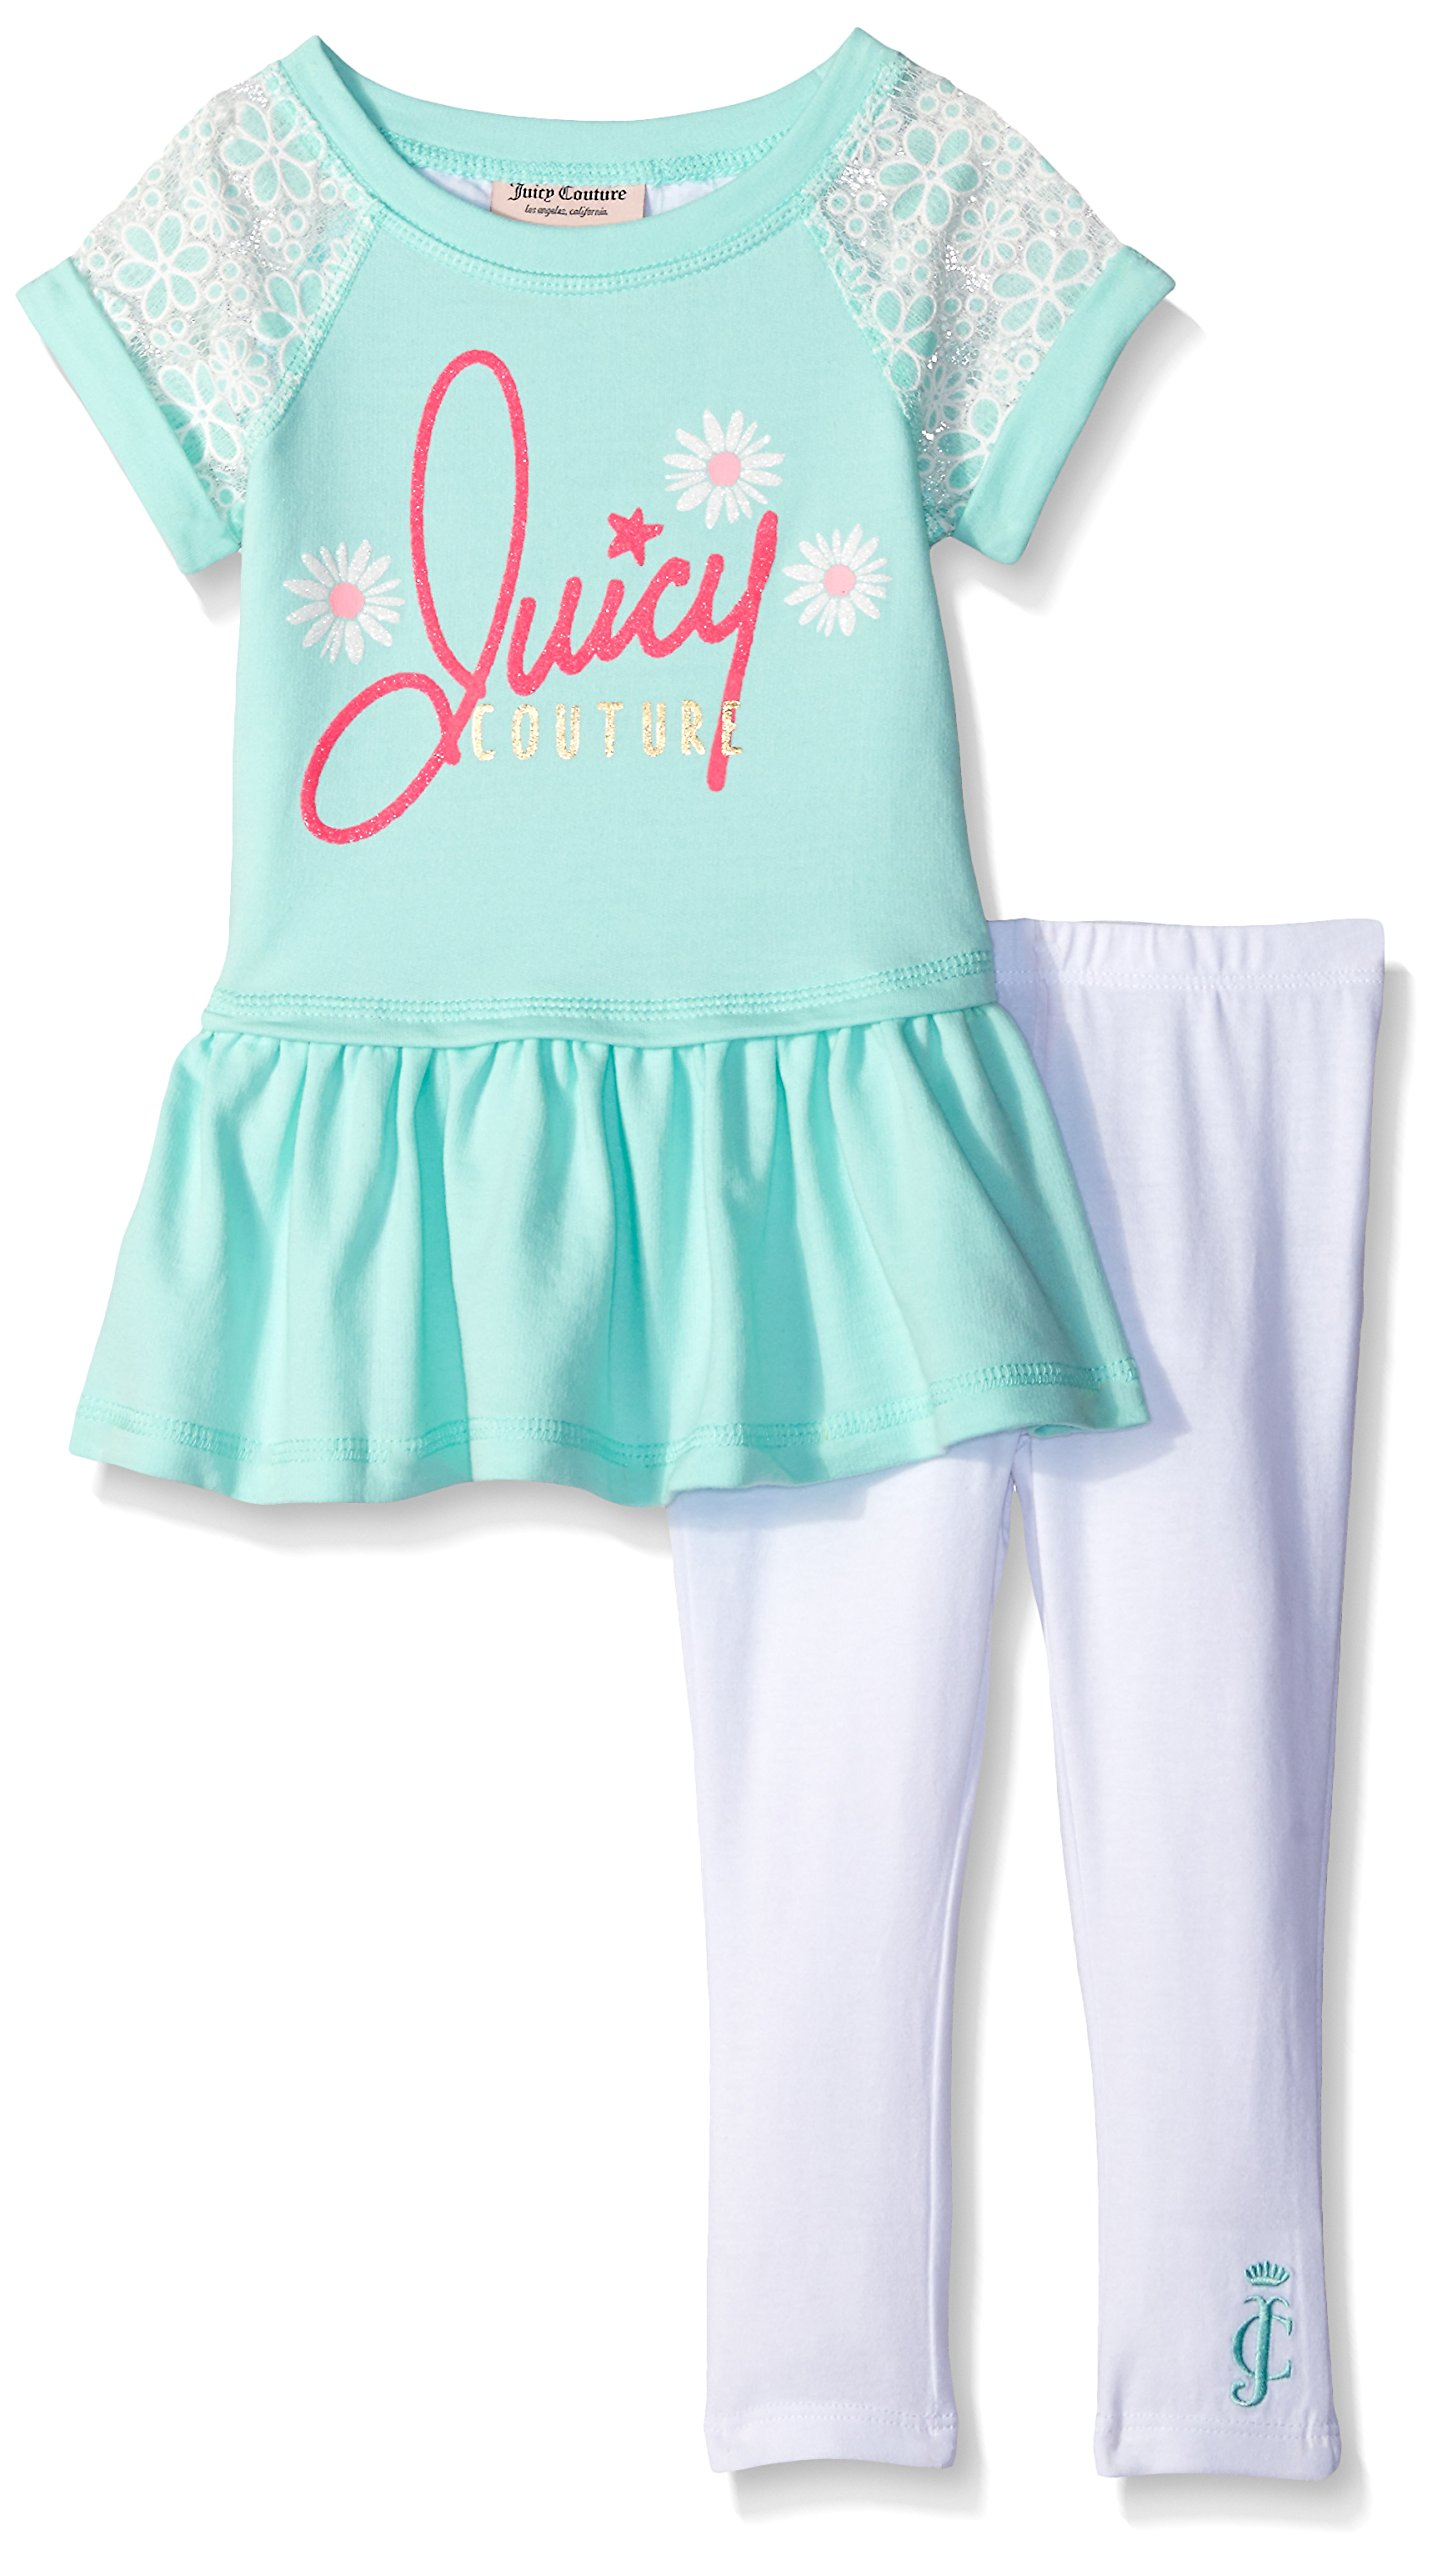 Juicy Couture Big Girls' French Terry Top with Lace and Stretch Jersey Pants, Sea Glass, 4